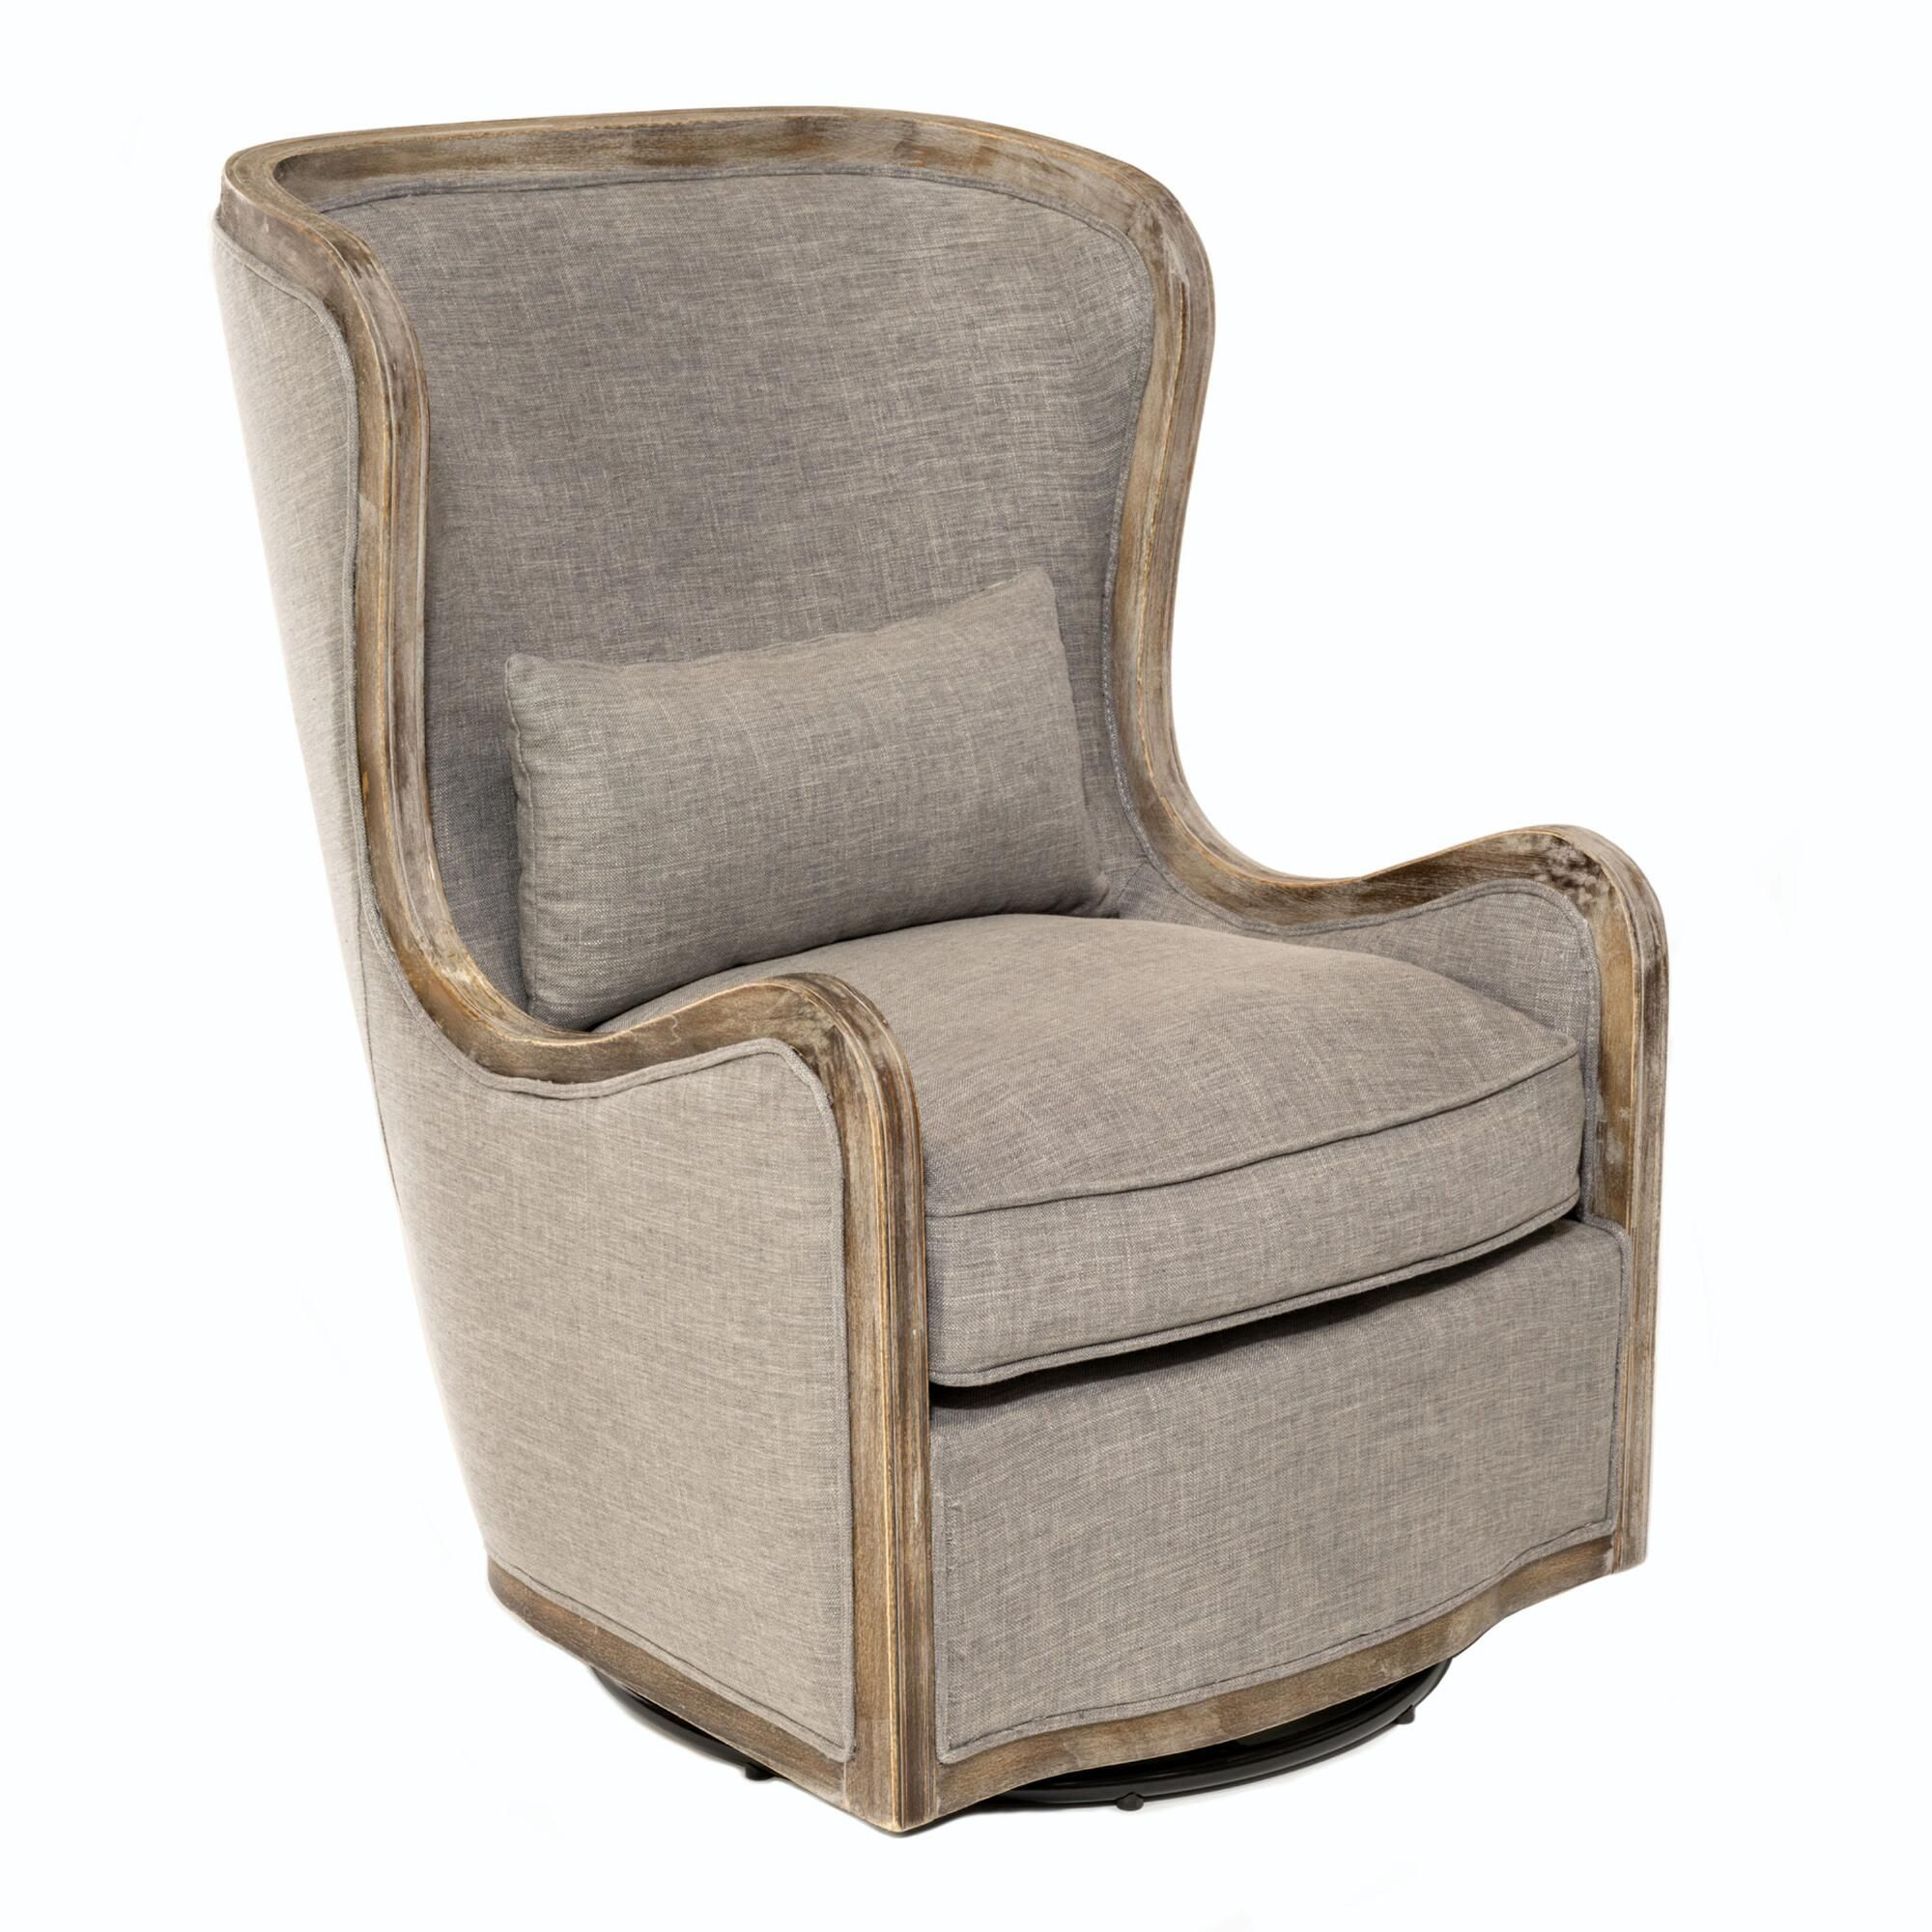 Cost Plus World Market Essex Chair Polyvore Chesterfield Style